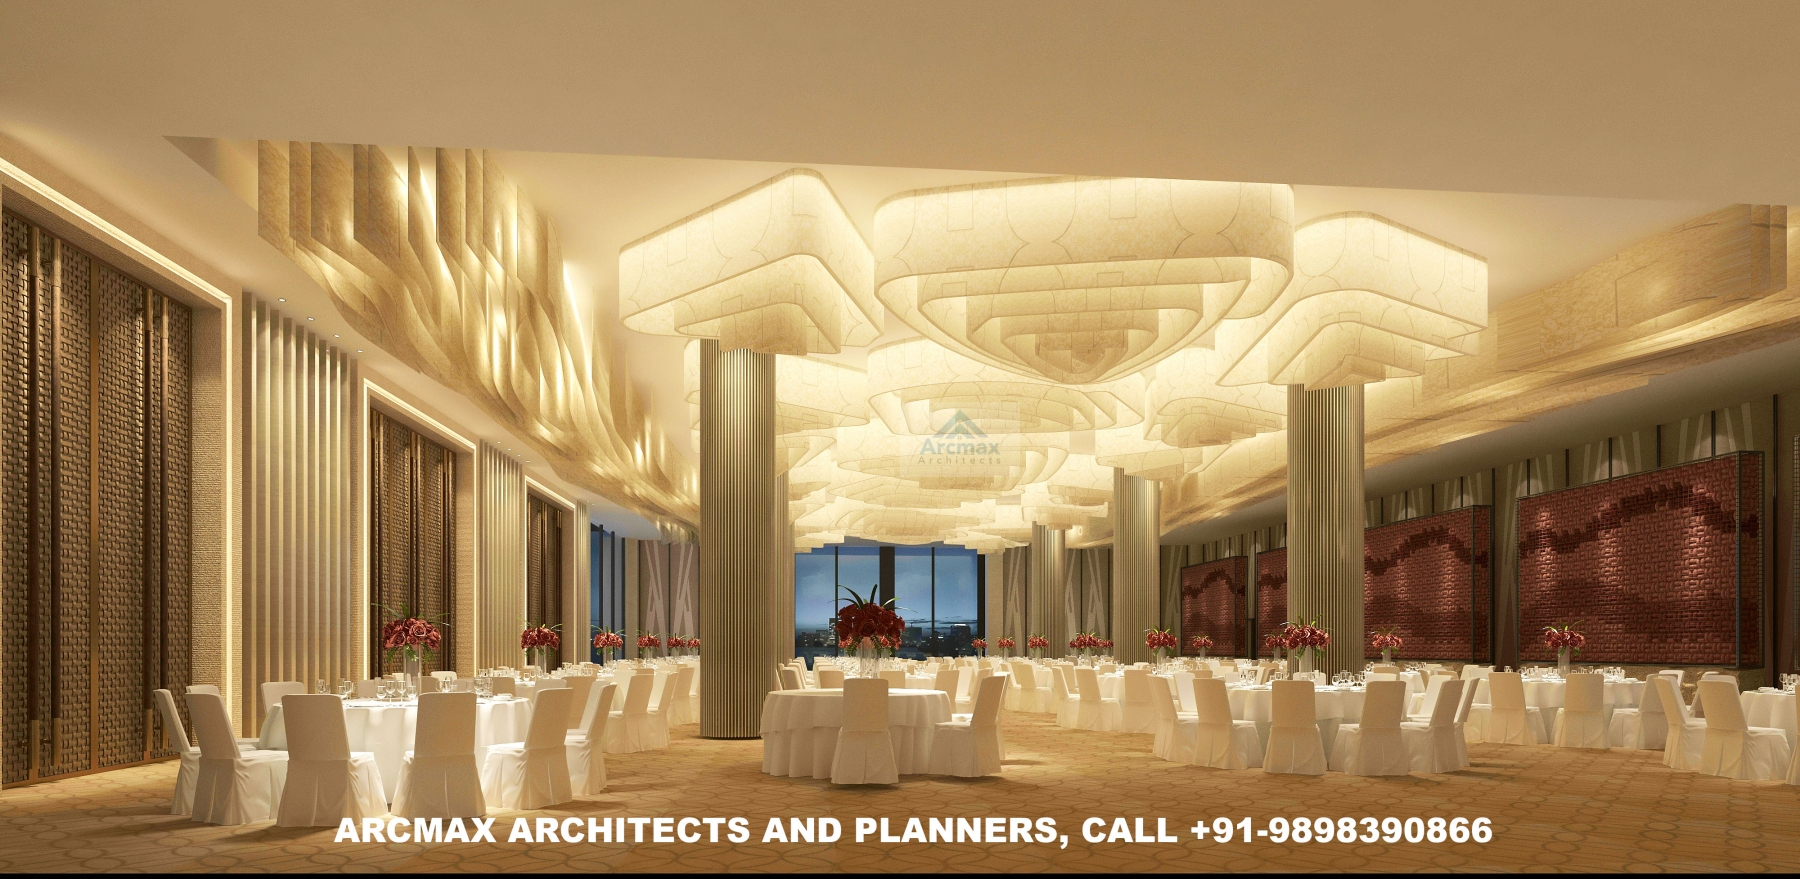 Banquet Hall Design And Planning Online Anywhere In The